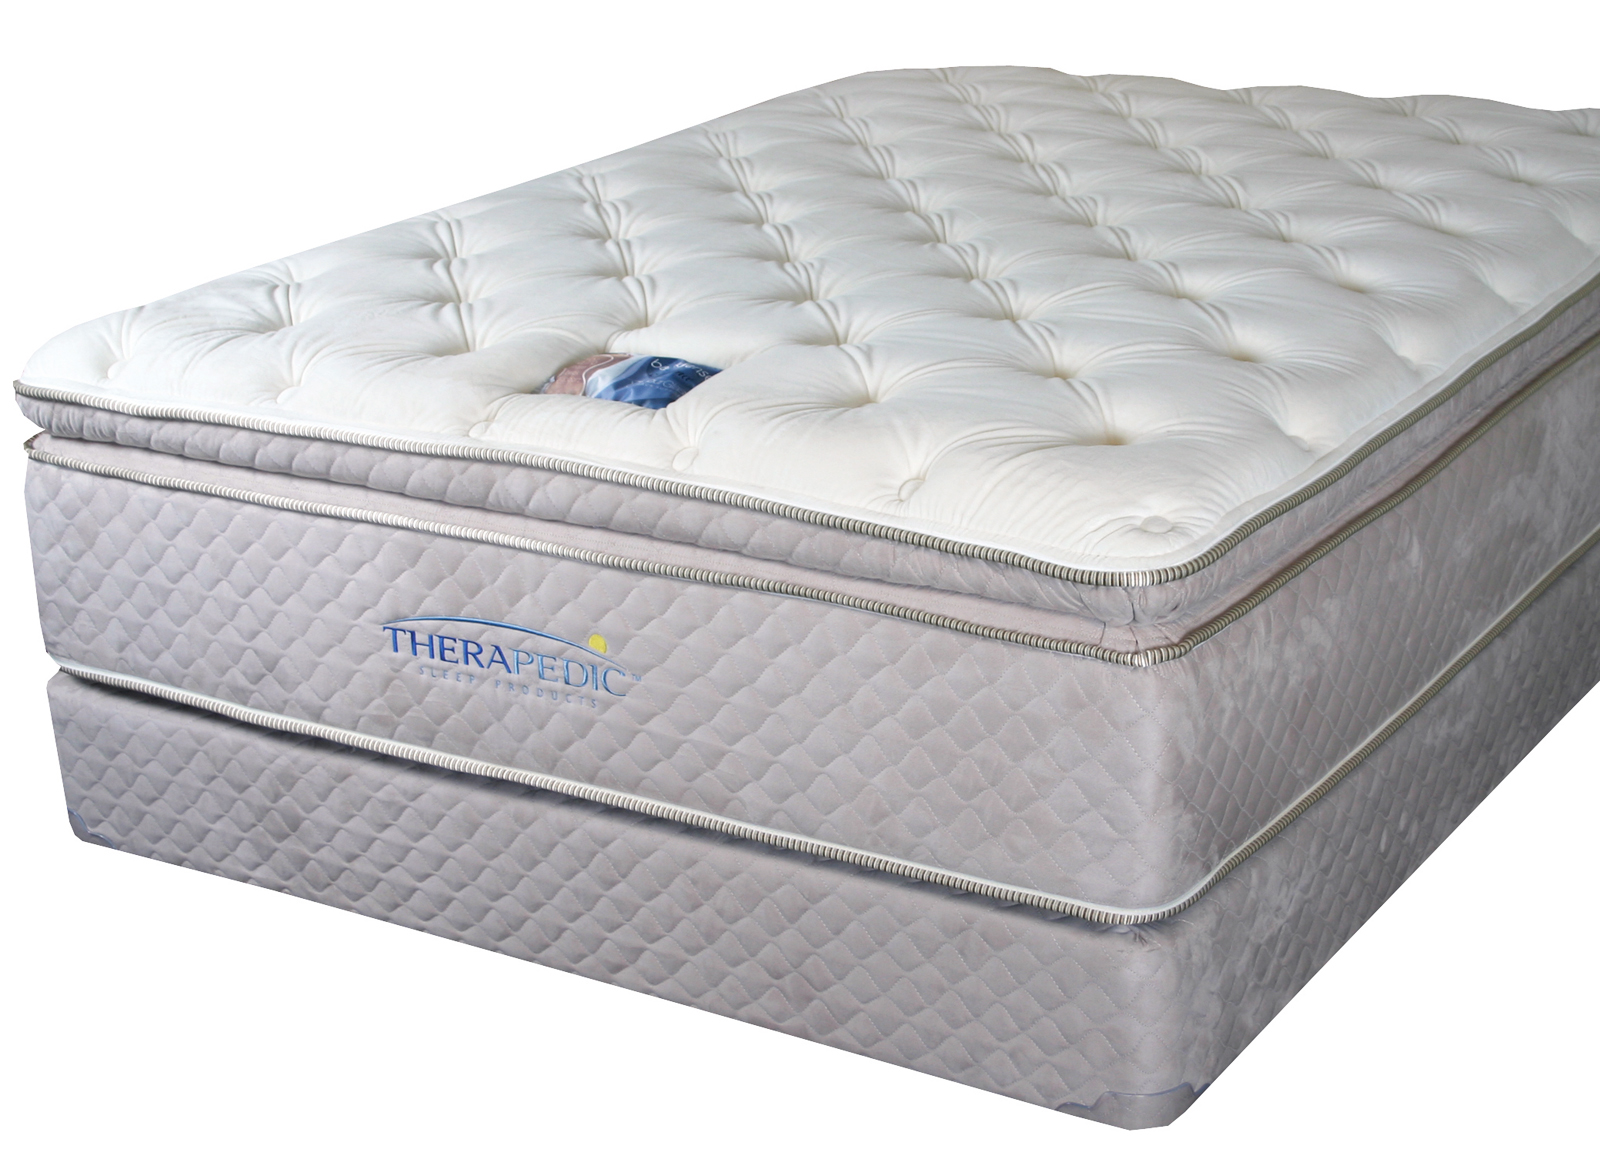 pillow top mattress. X - Therapedic BackSense Elite Plush Pillow Top Mattress